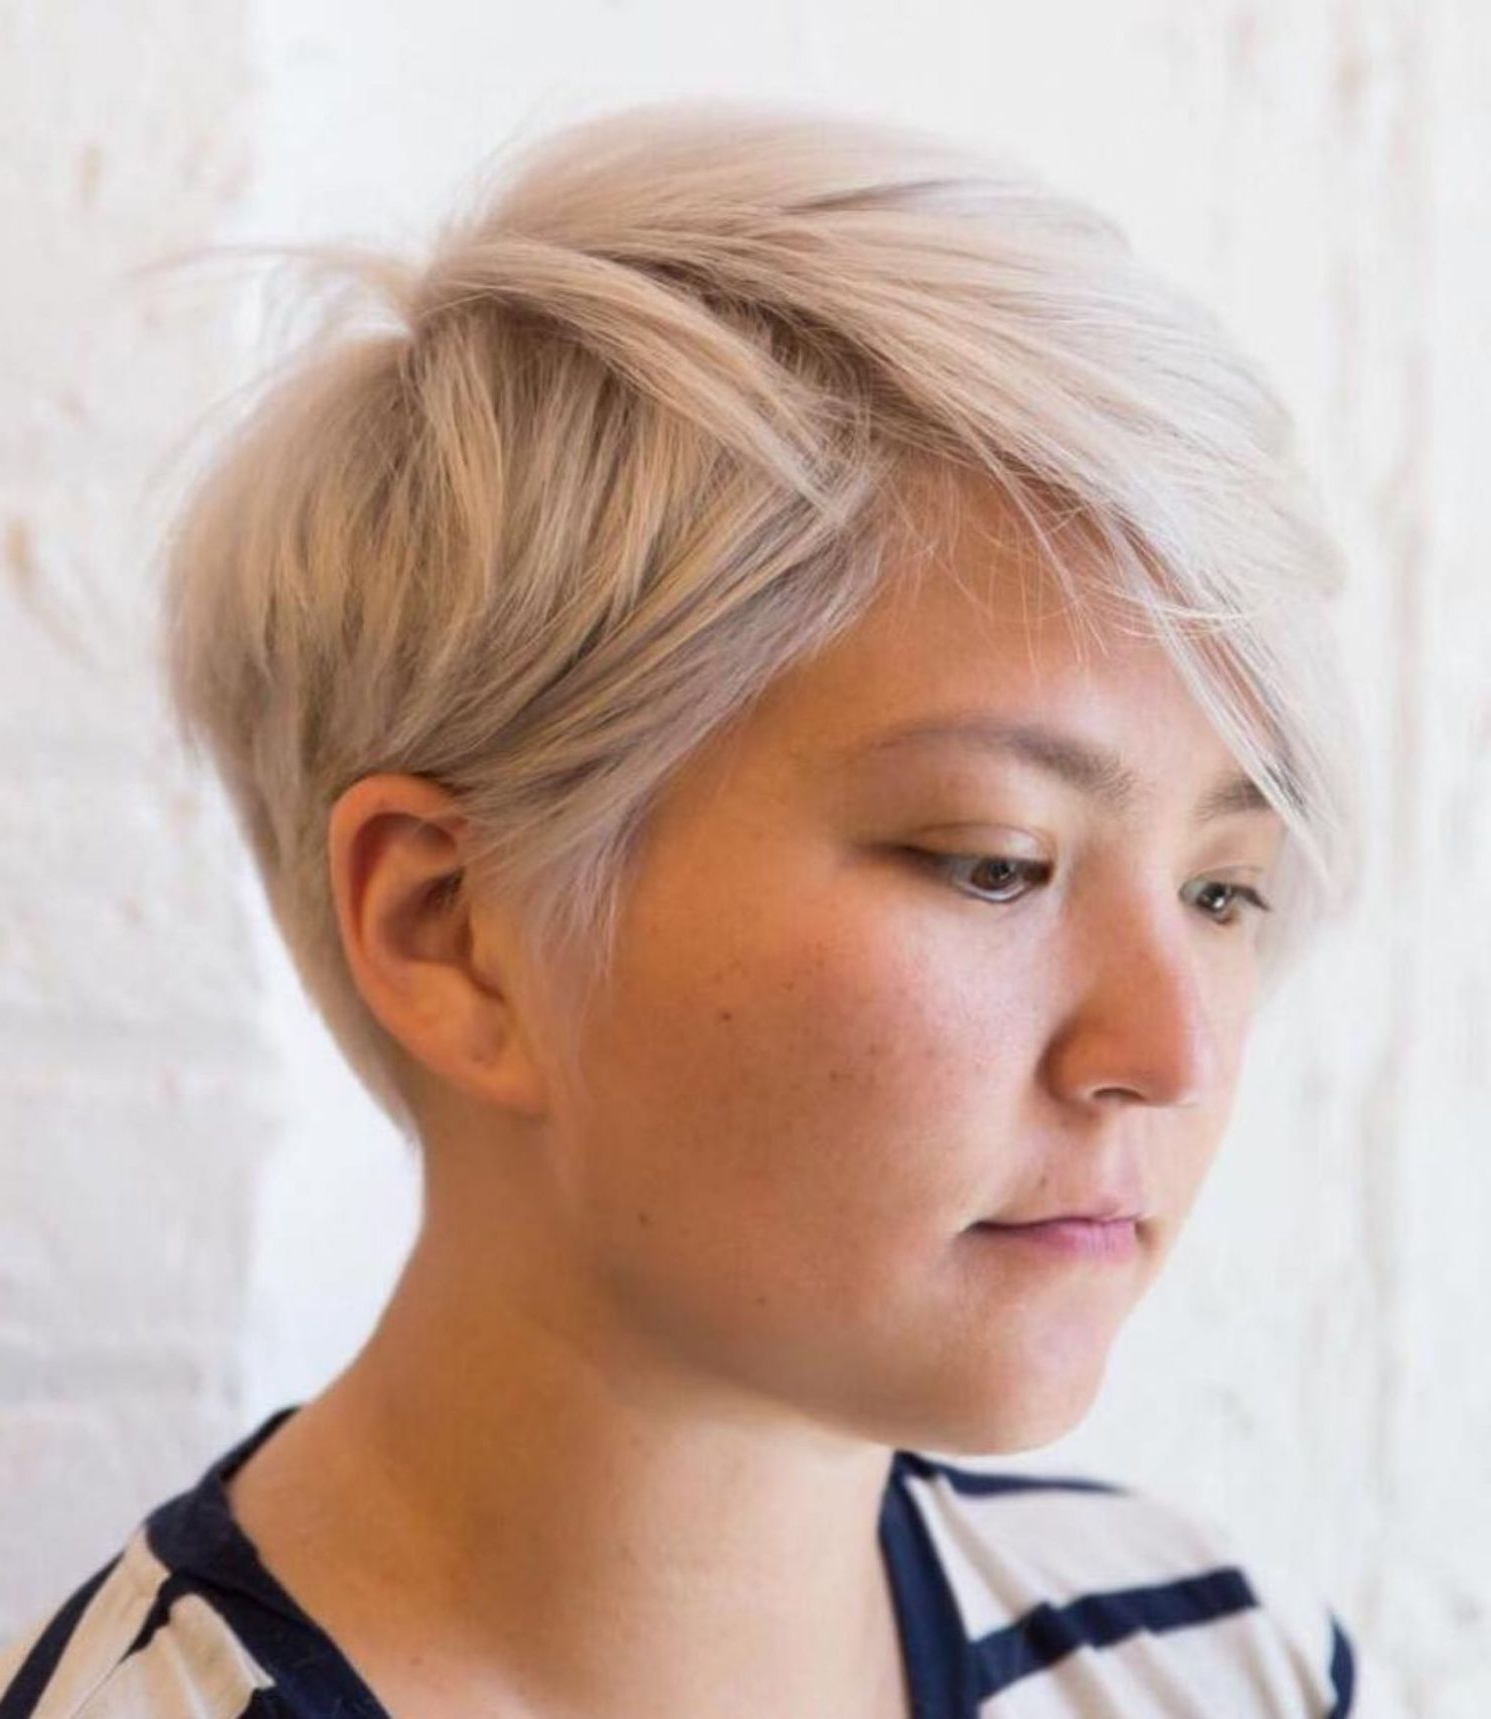 Well Liked Sleek Coif Hairstyles With Double Sided Undercut Inside 50 Super Cute Looks With Short Hairstyles For Round Faces (View 5 of 20)